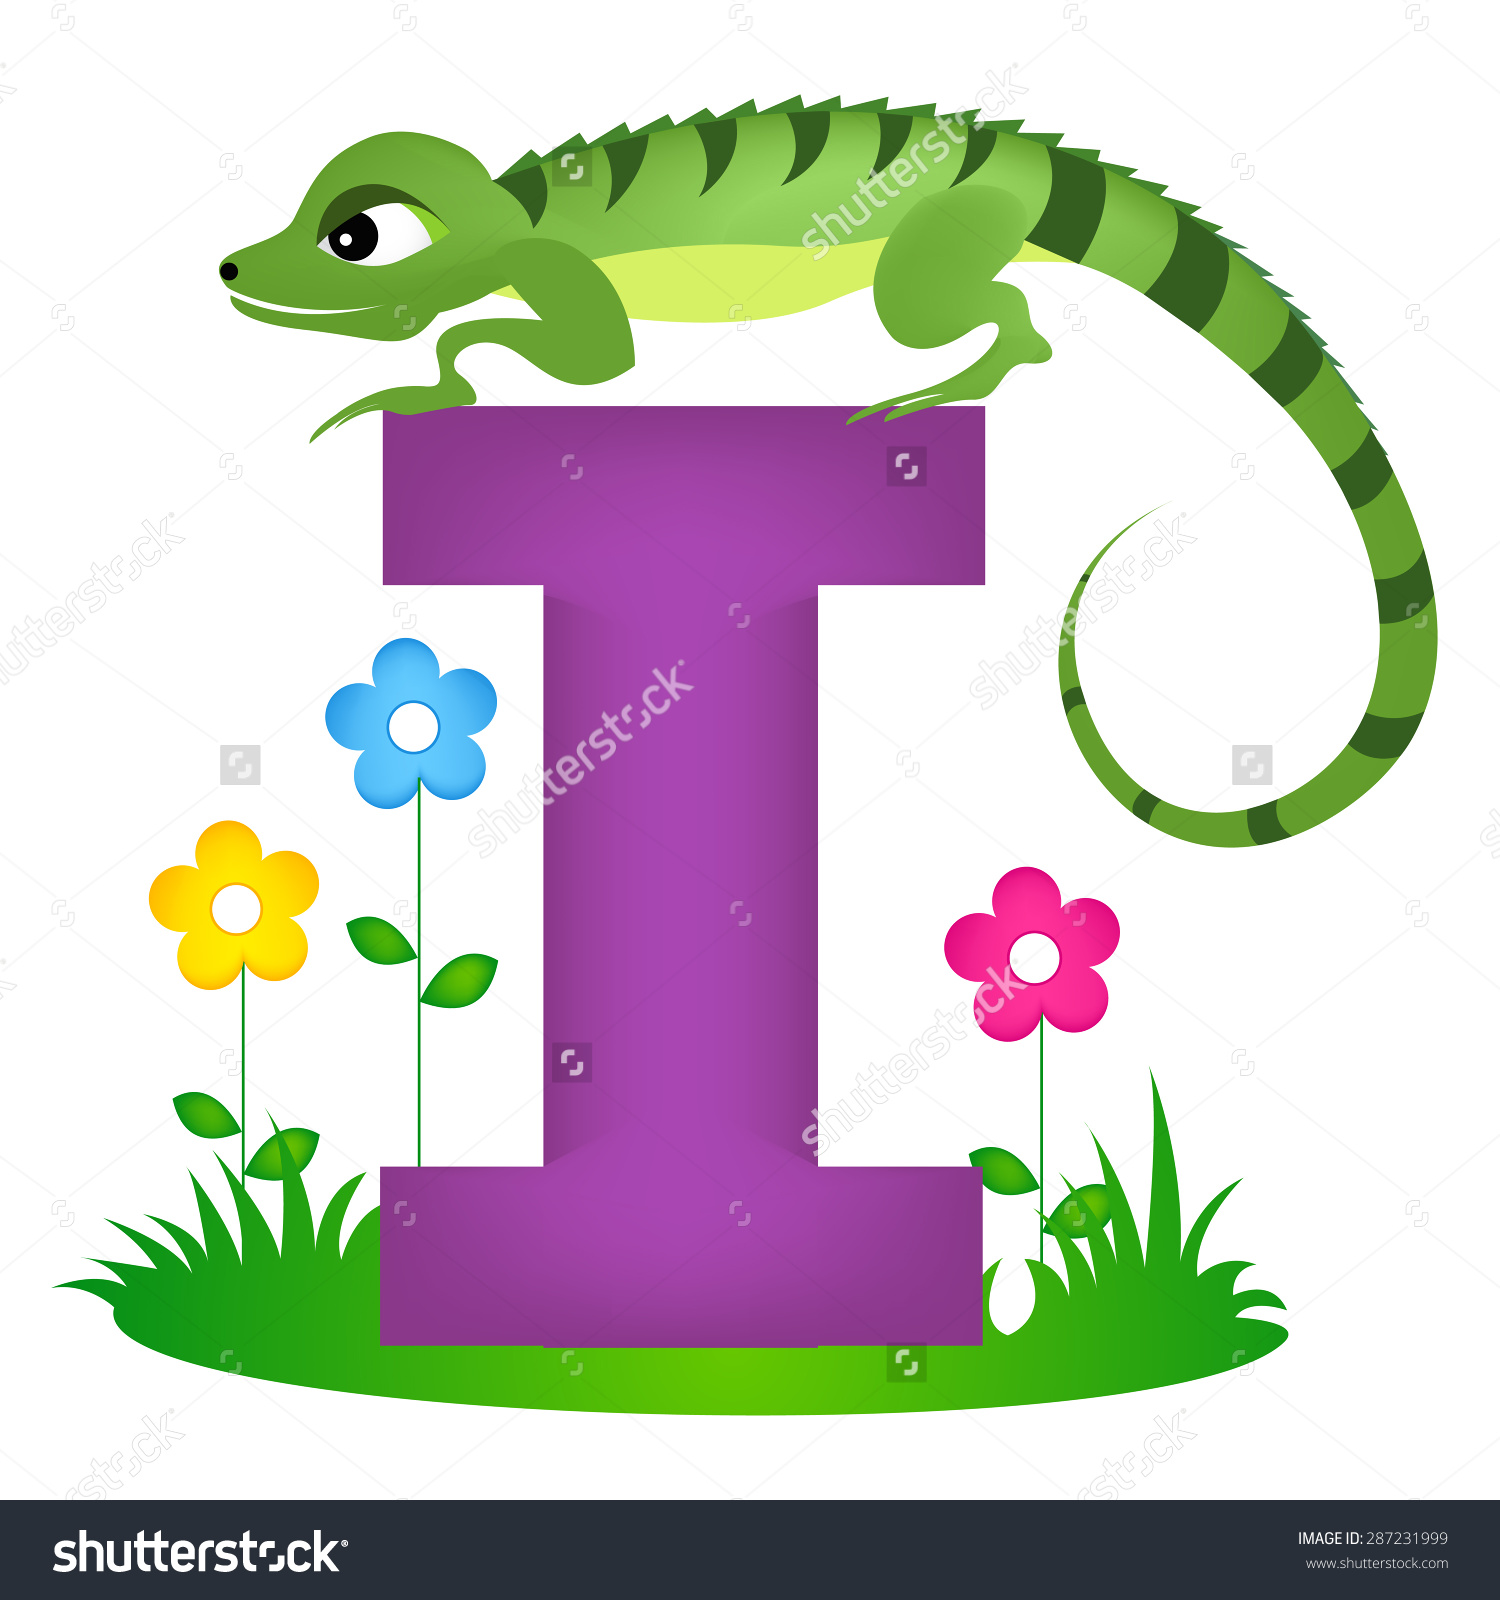 Colorful Animal Alphabet Letter Cute Iguana Stock Vector 287231999.